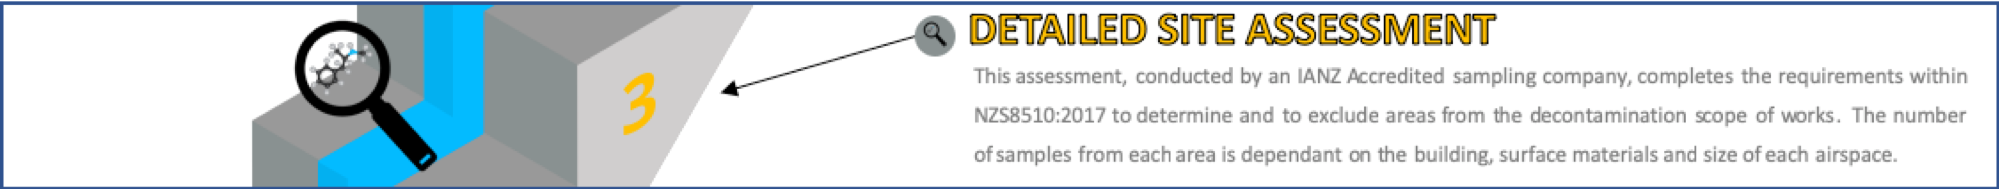 Detailed Site Assessment